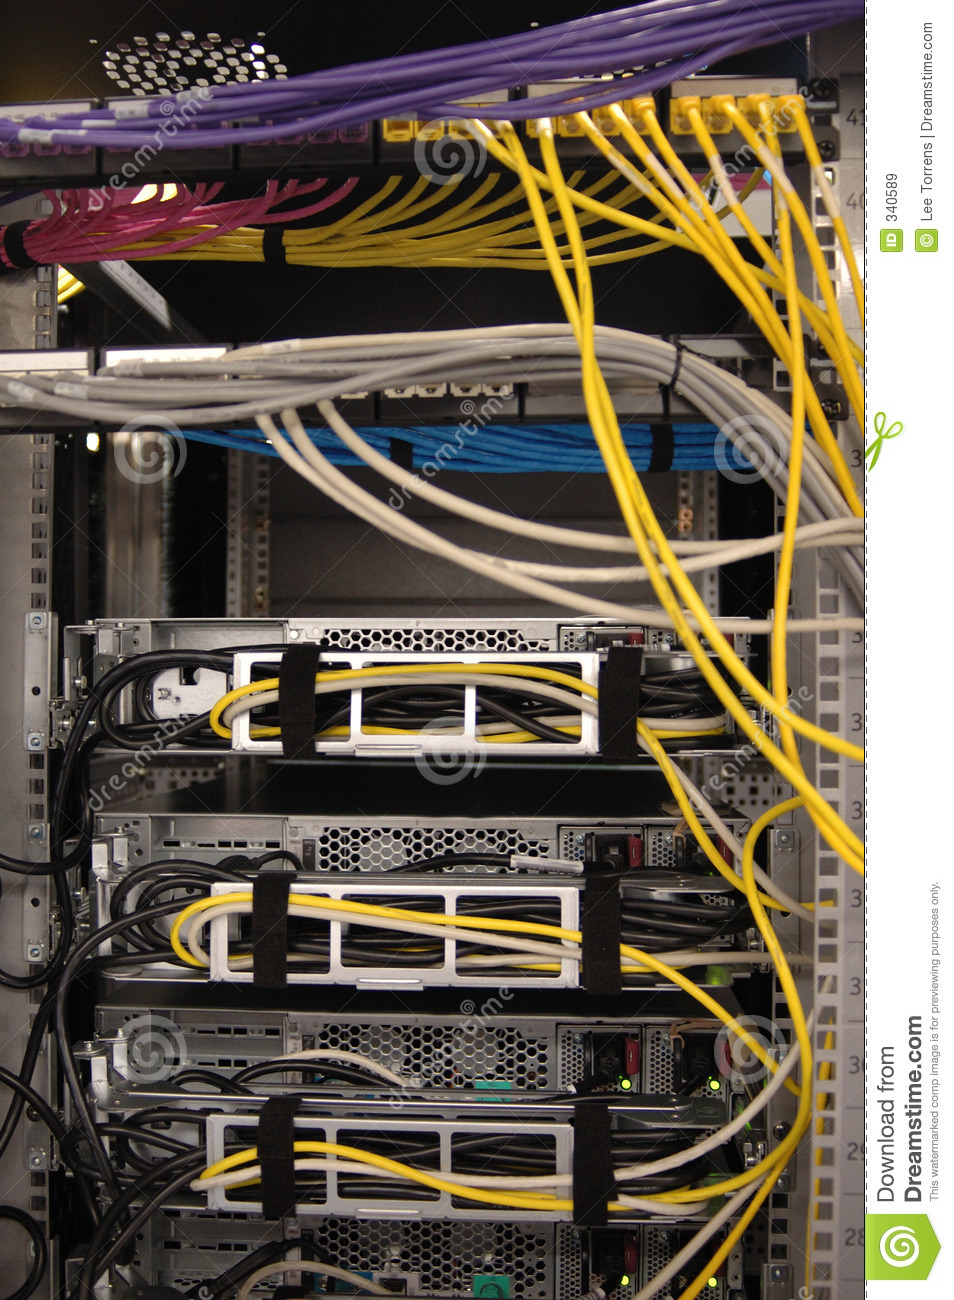 hight resolution of the rear of a server rack populated with servers this shows colour coded cable patching implemented in a neat and professional manner